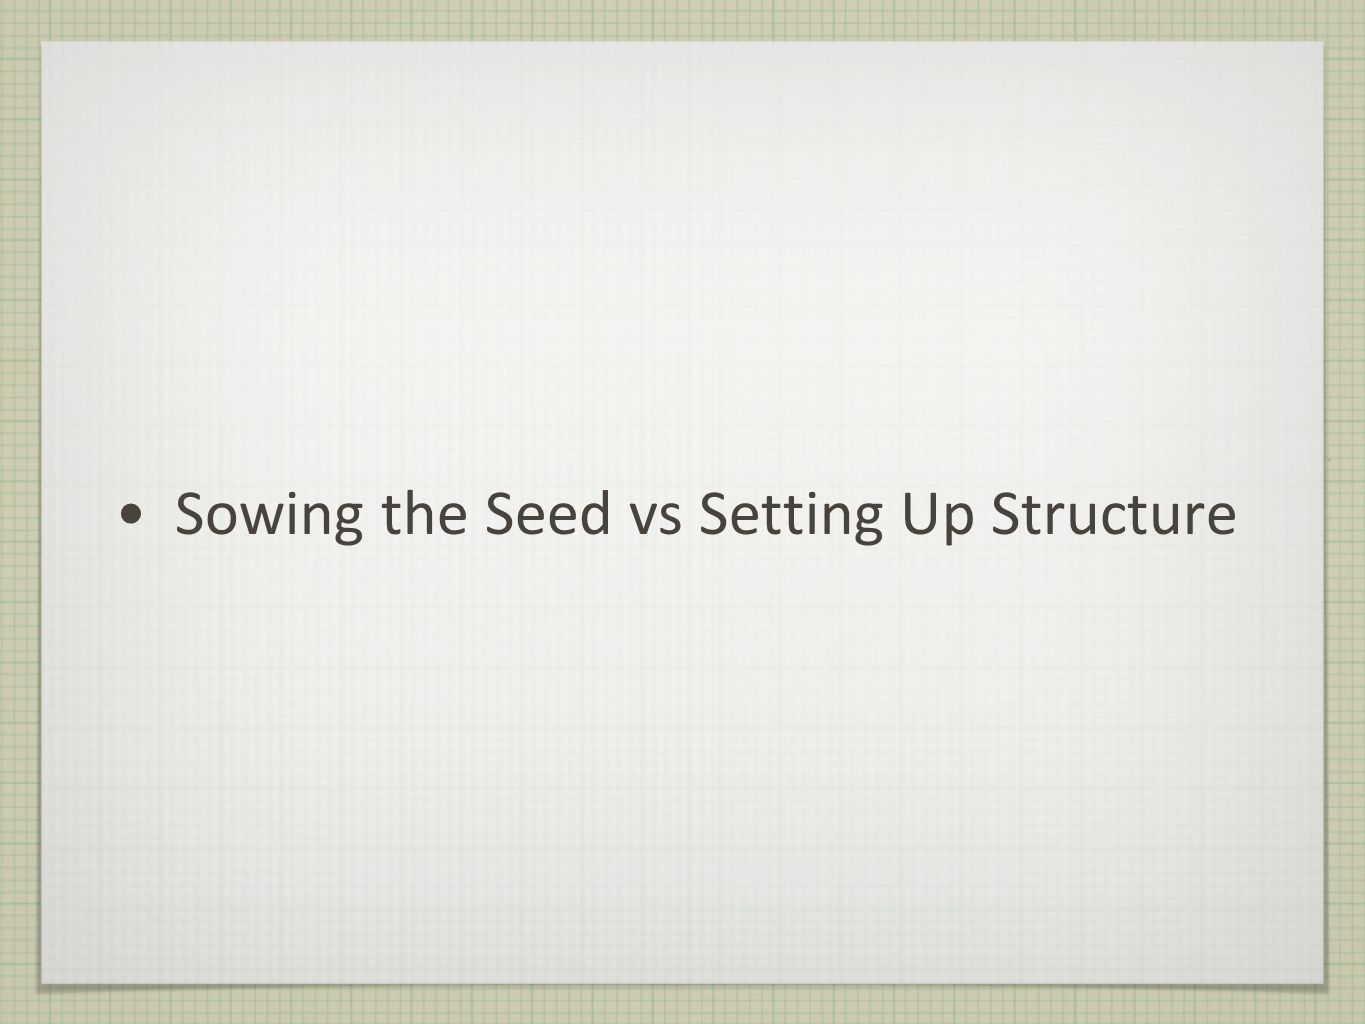 Sowing the Seed vs Setting Up Structure